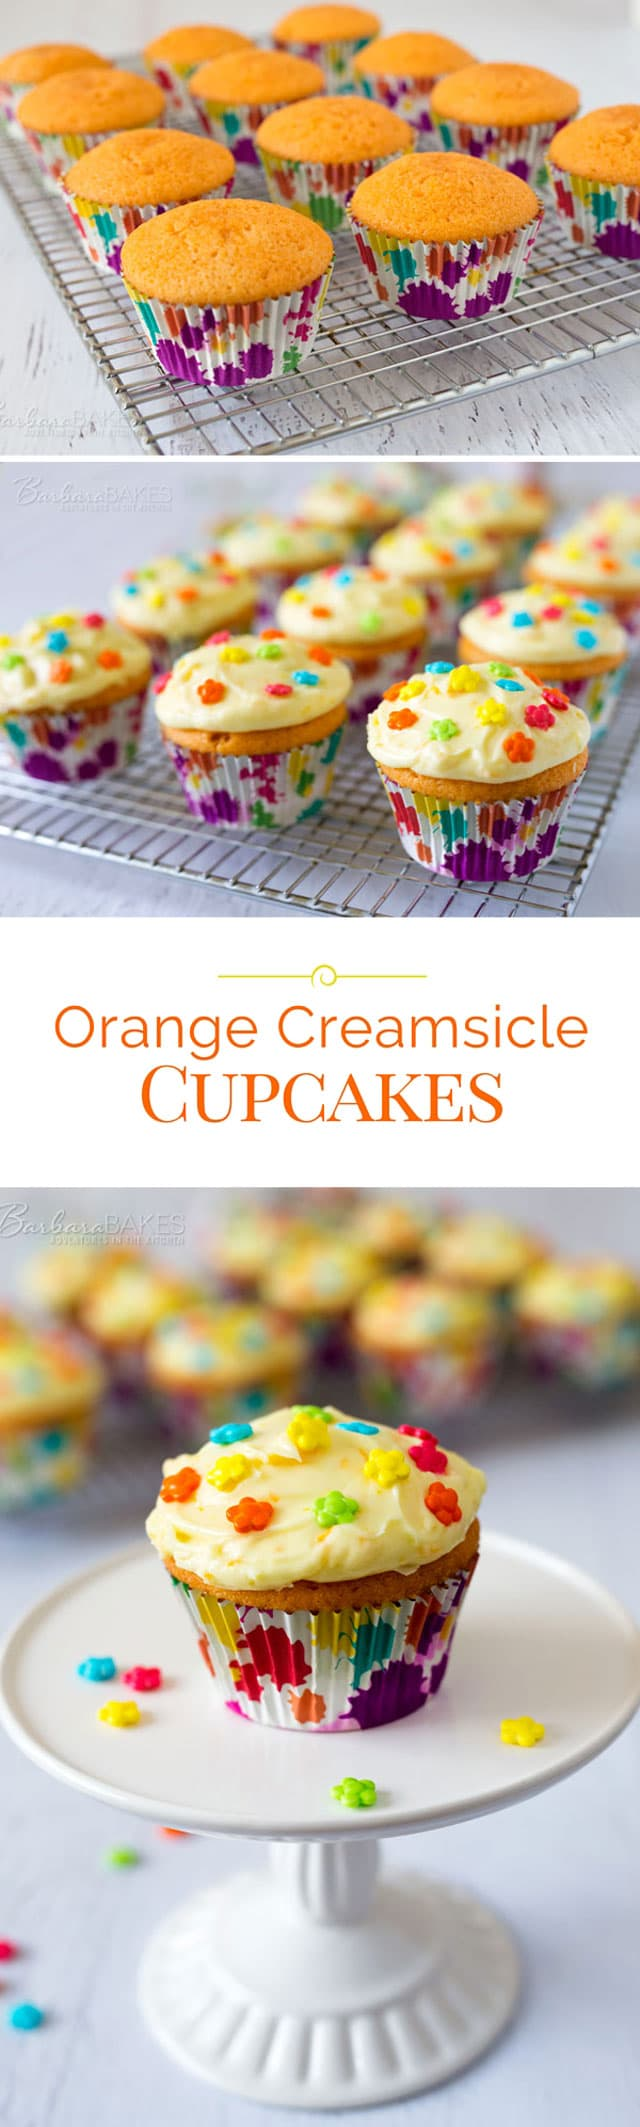 Orange-Creamsicle-Cupcakes-Collage-Barbara-Bakes